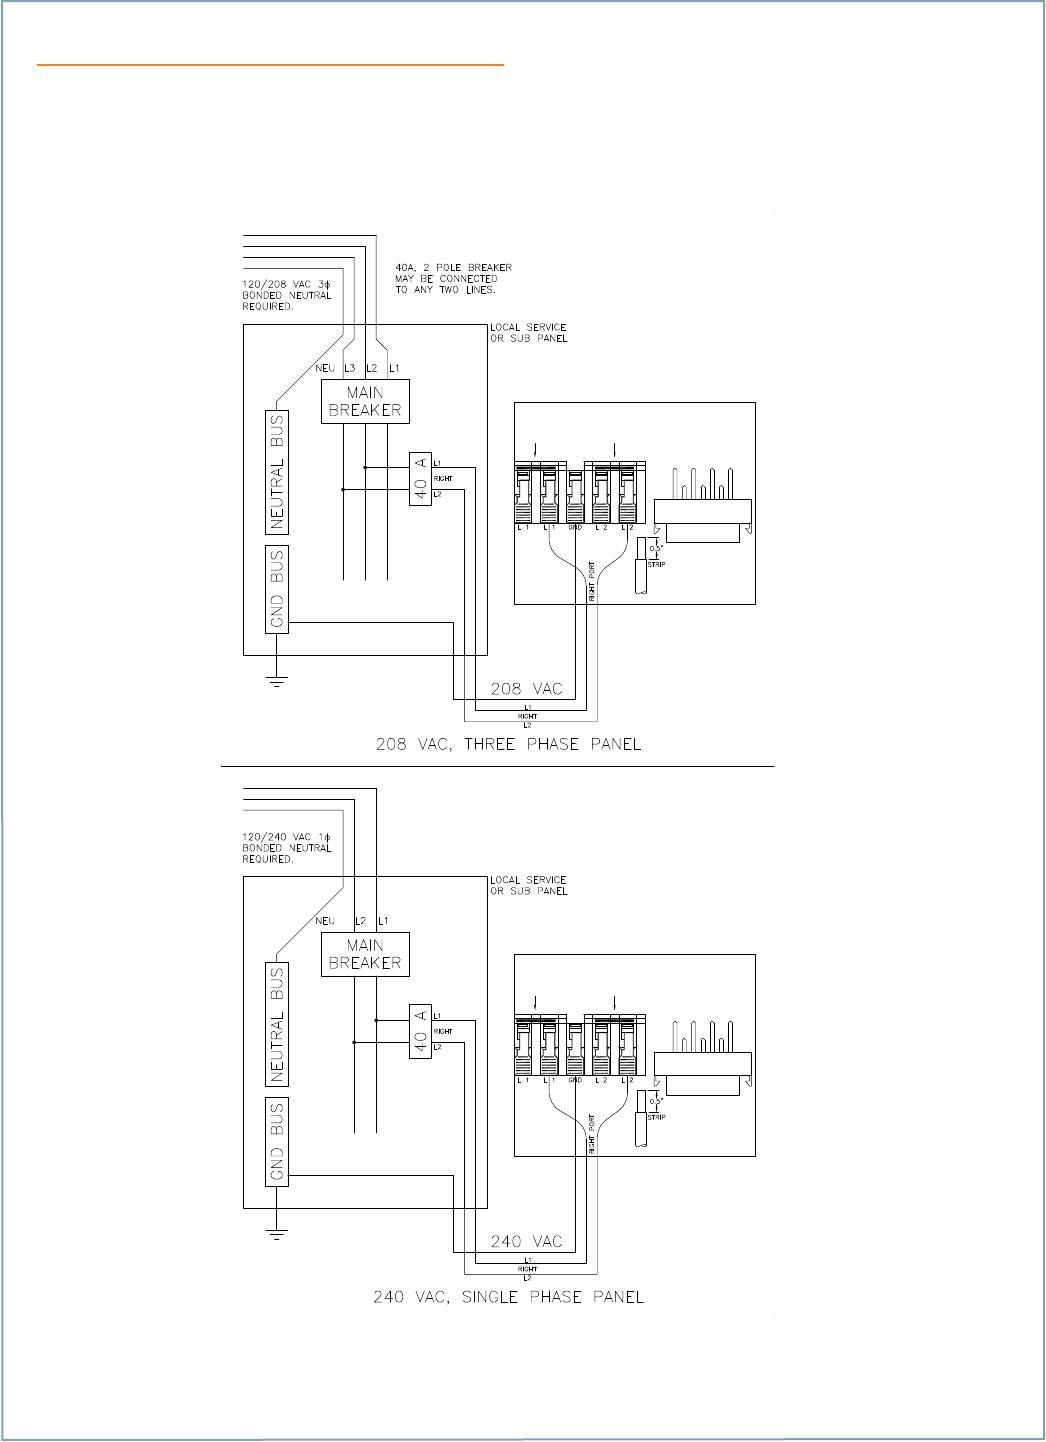 Grace Digital CT4000 Installation Guide Download - Shared ... on main service panel diagram, main outside breaker box, 3 wire headlight wiring diagram, 240v gfci breaker wiring diagram, 40 amp breaker wiring diagram, electrical box wiring diagram, rv solar panel diagram, rv electrical system wiring diagram, main panel grounding diagram, circuit breaker diagram, centripro pump control wiring diagram, arc fault breaker wiring diagram, electrical panel diagram, electrical outlet wiring diagram, diy generator wiring diagram, main distribution panel, a/c compressor wiring diagram, at&t phone box wiring diagram, breaker box diagram, water pump control box wiring diagram,